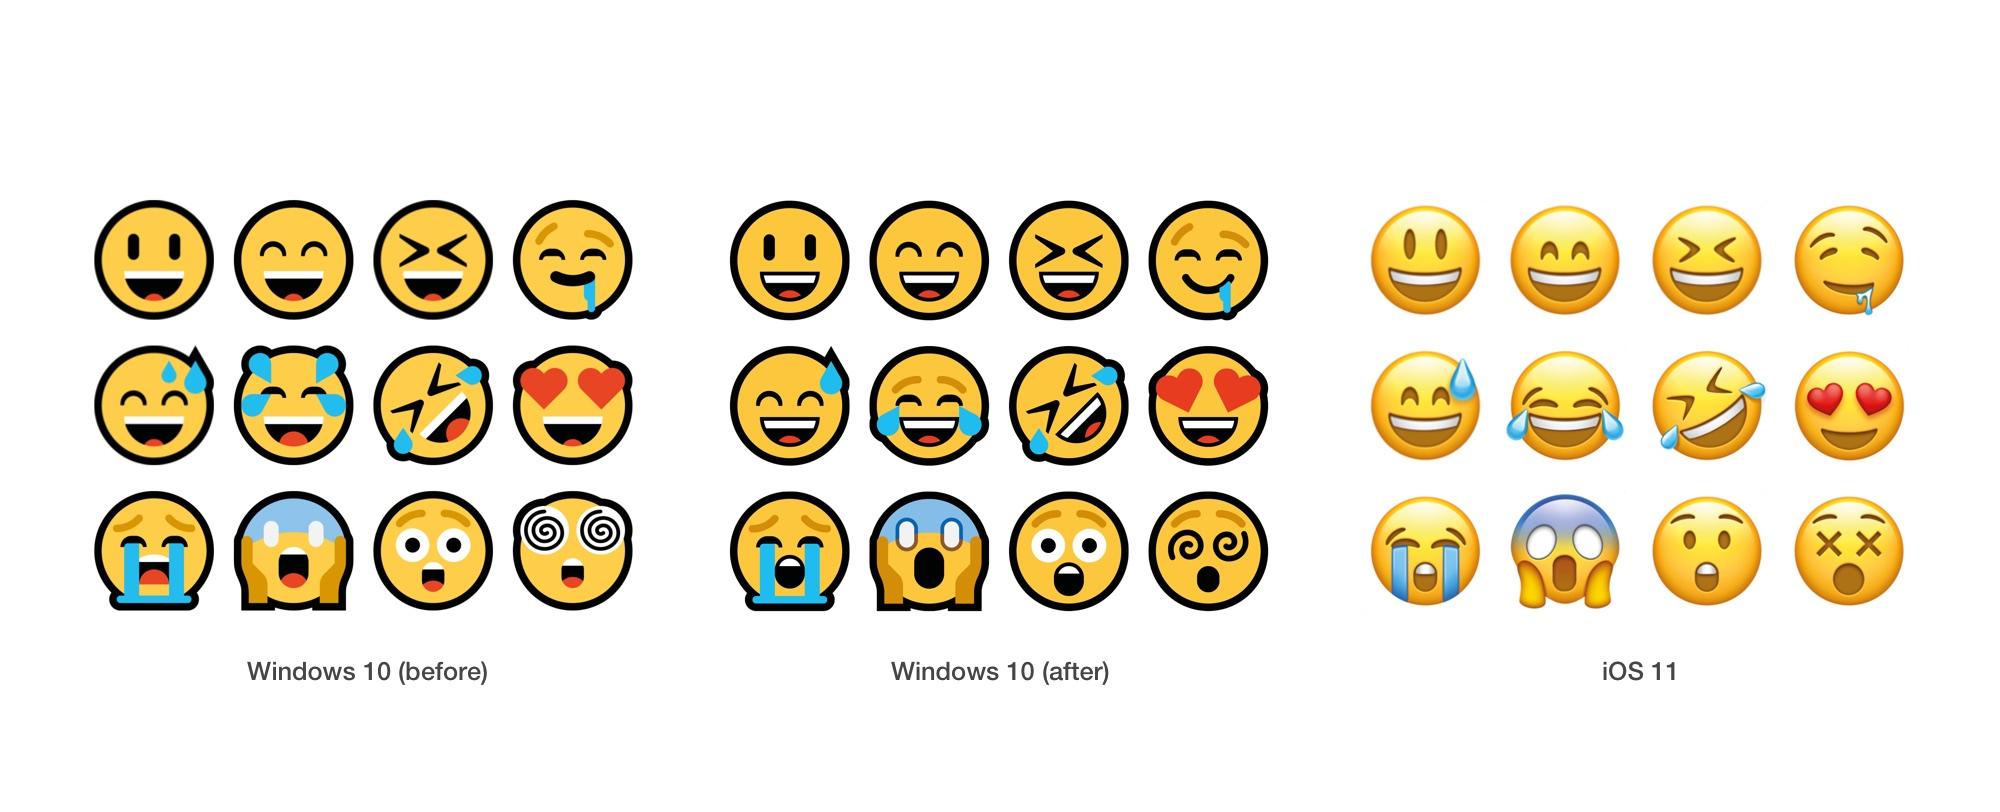 windows-10-april-2018-smiley-emoji-comparison-emojipedia